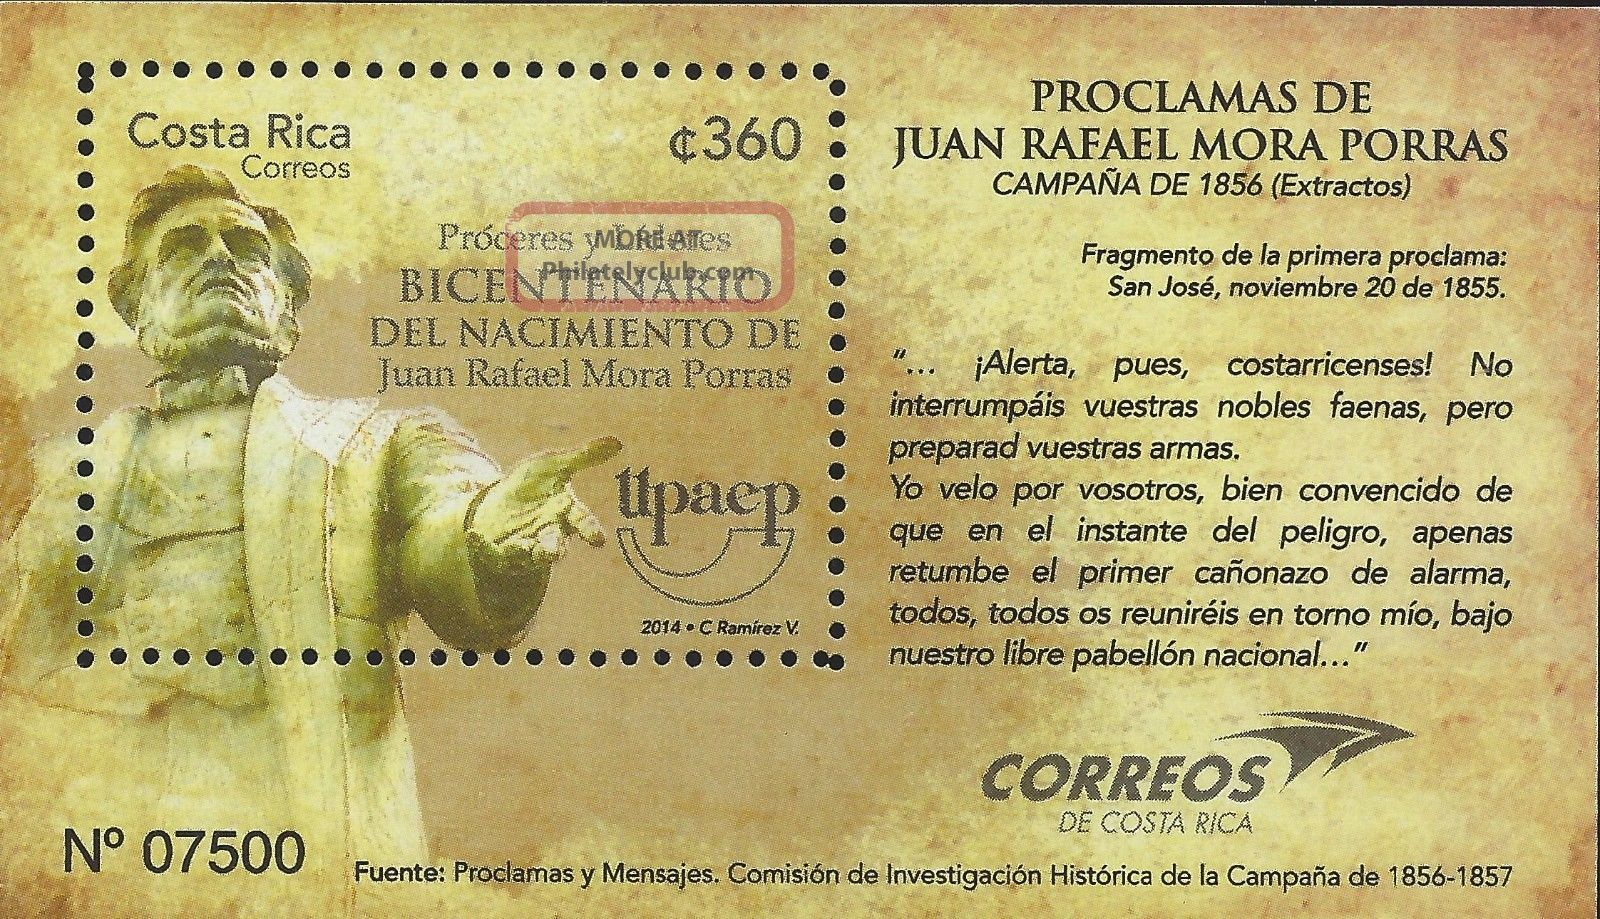 Costa Rica Upaep Bicentenary Of Juan Rafael Mora Porras 2014 Latin America photo